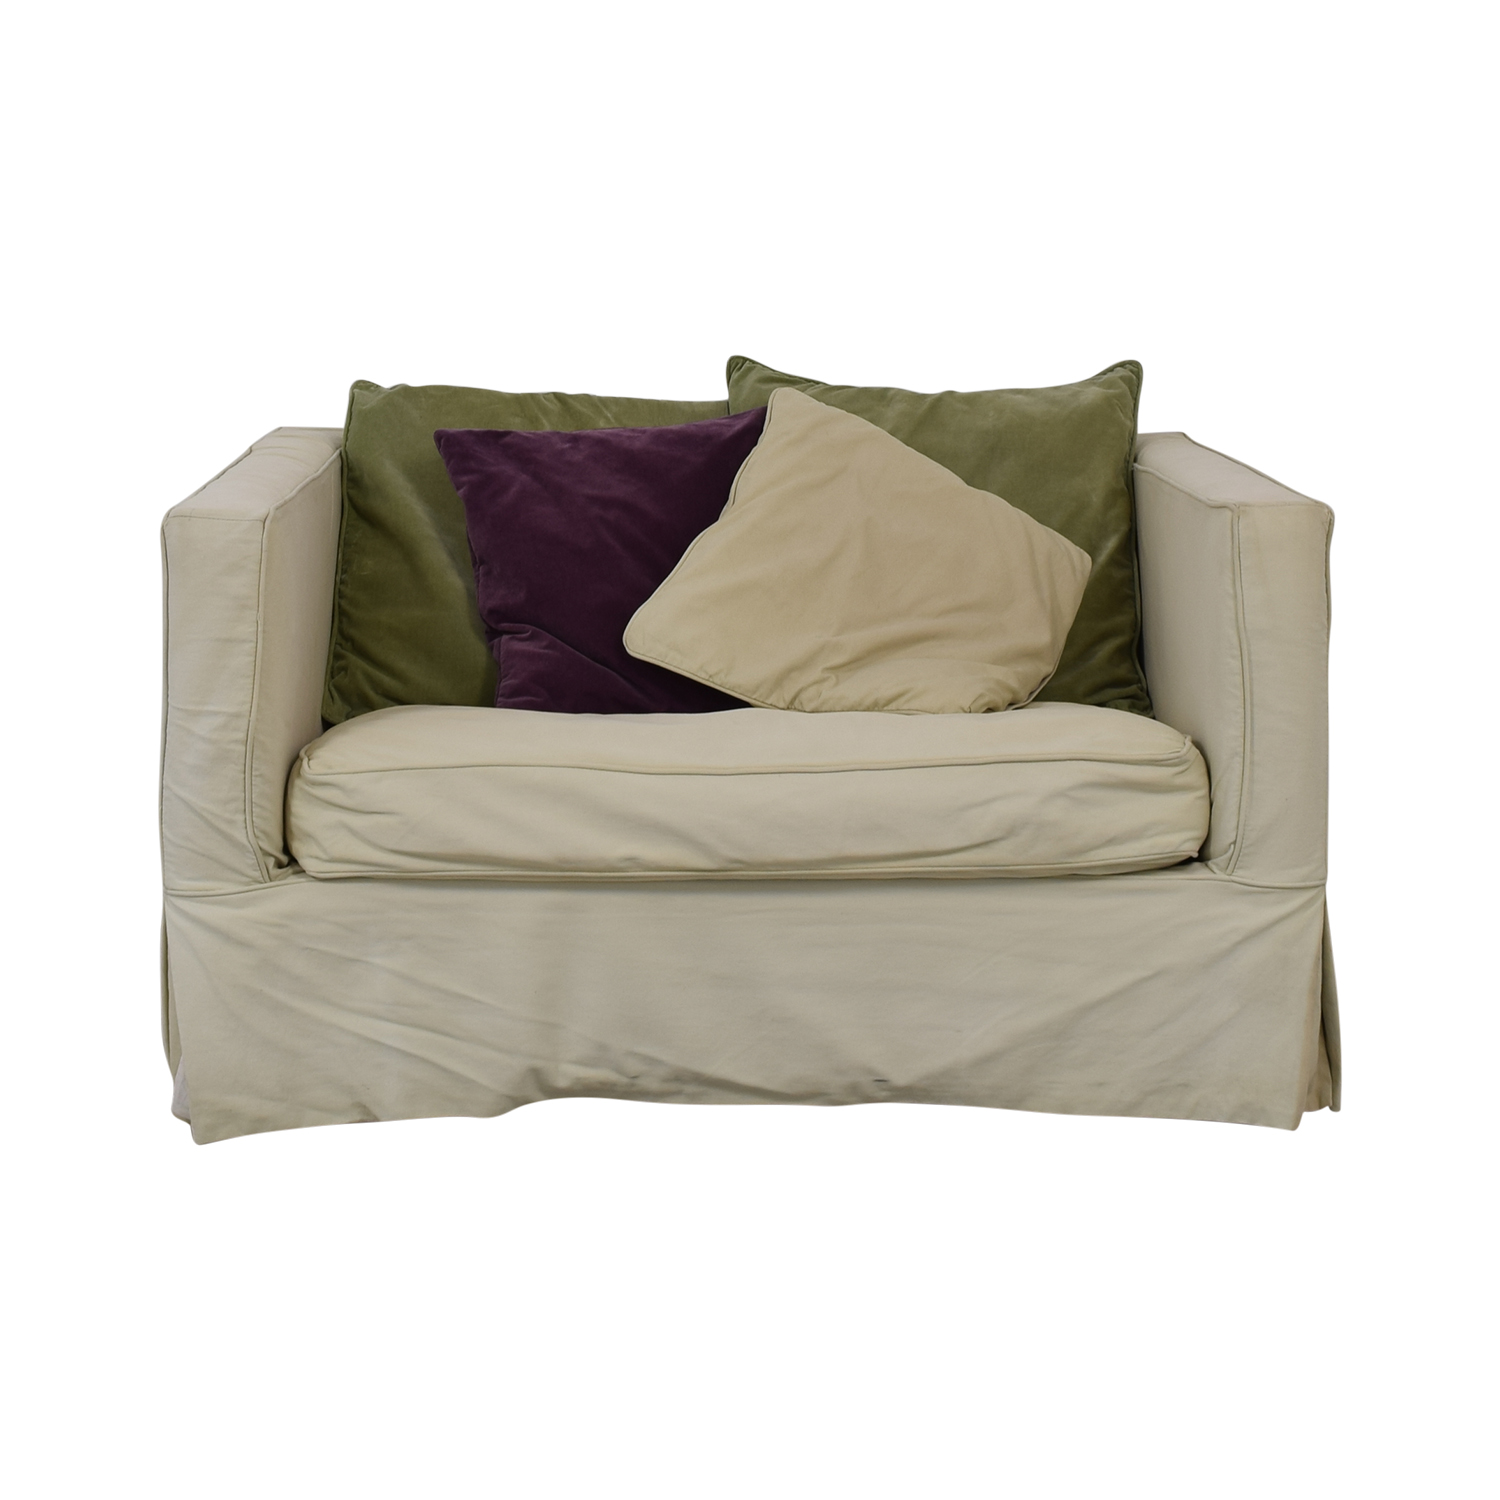 Crate & Barrel Crate & Barrel Beige Single Cushion Loveseat with Twin Pull Out Bed dimensions